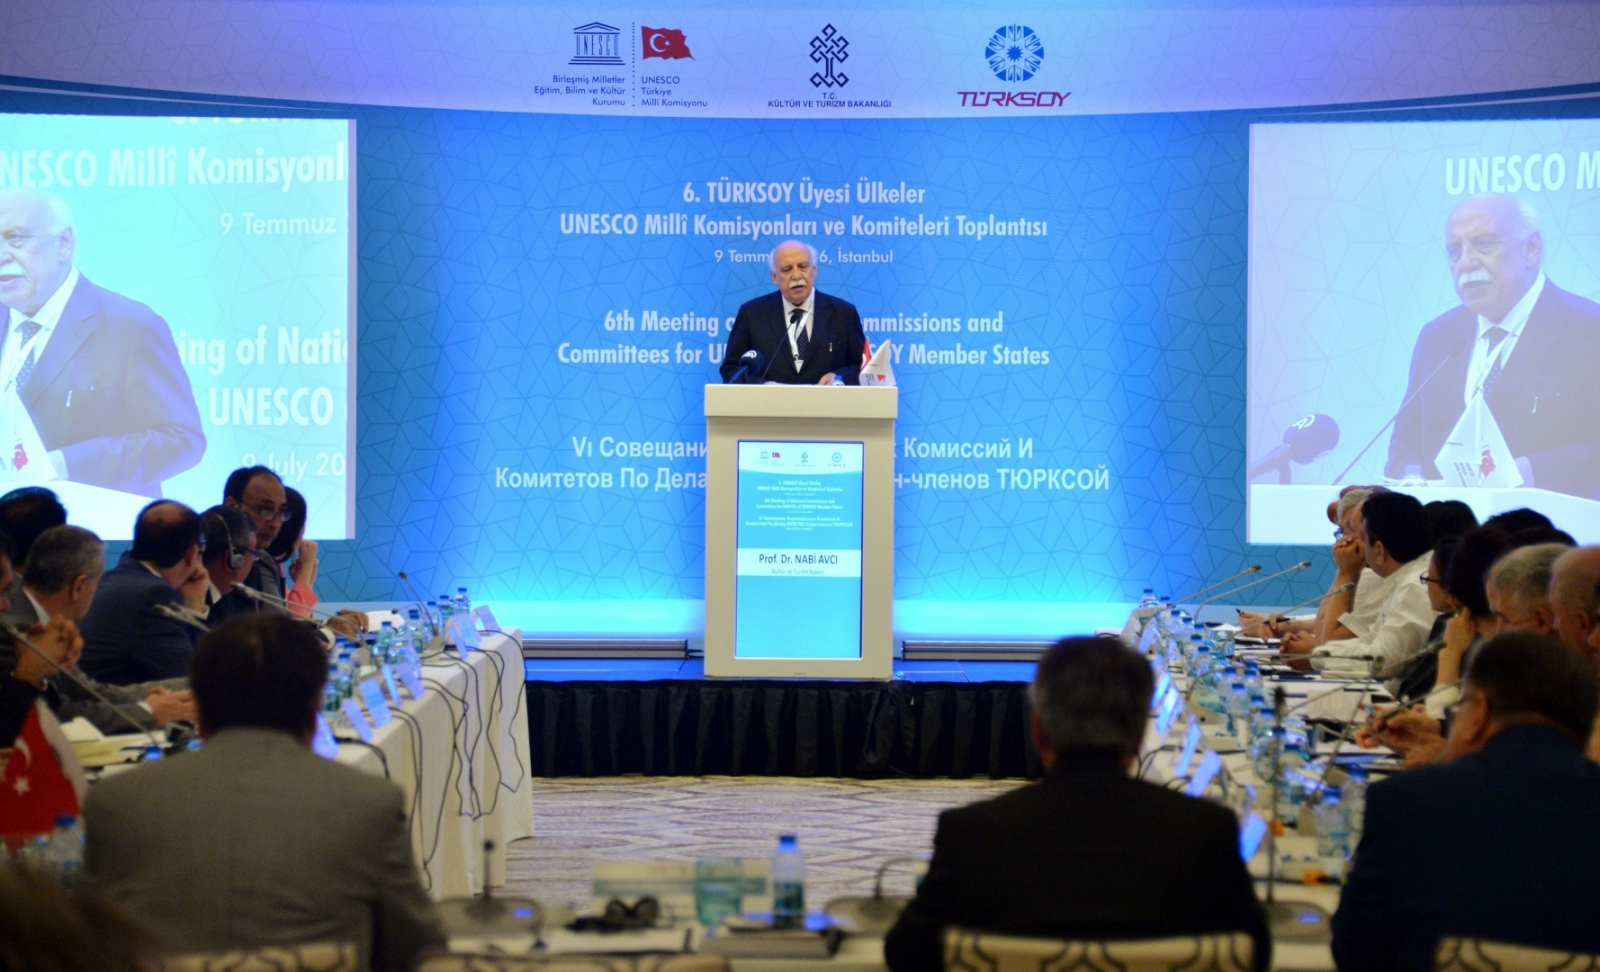 6th Meeting of UNESCO National Commissions and Committees of TURKSOY member countries